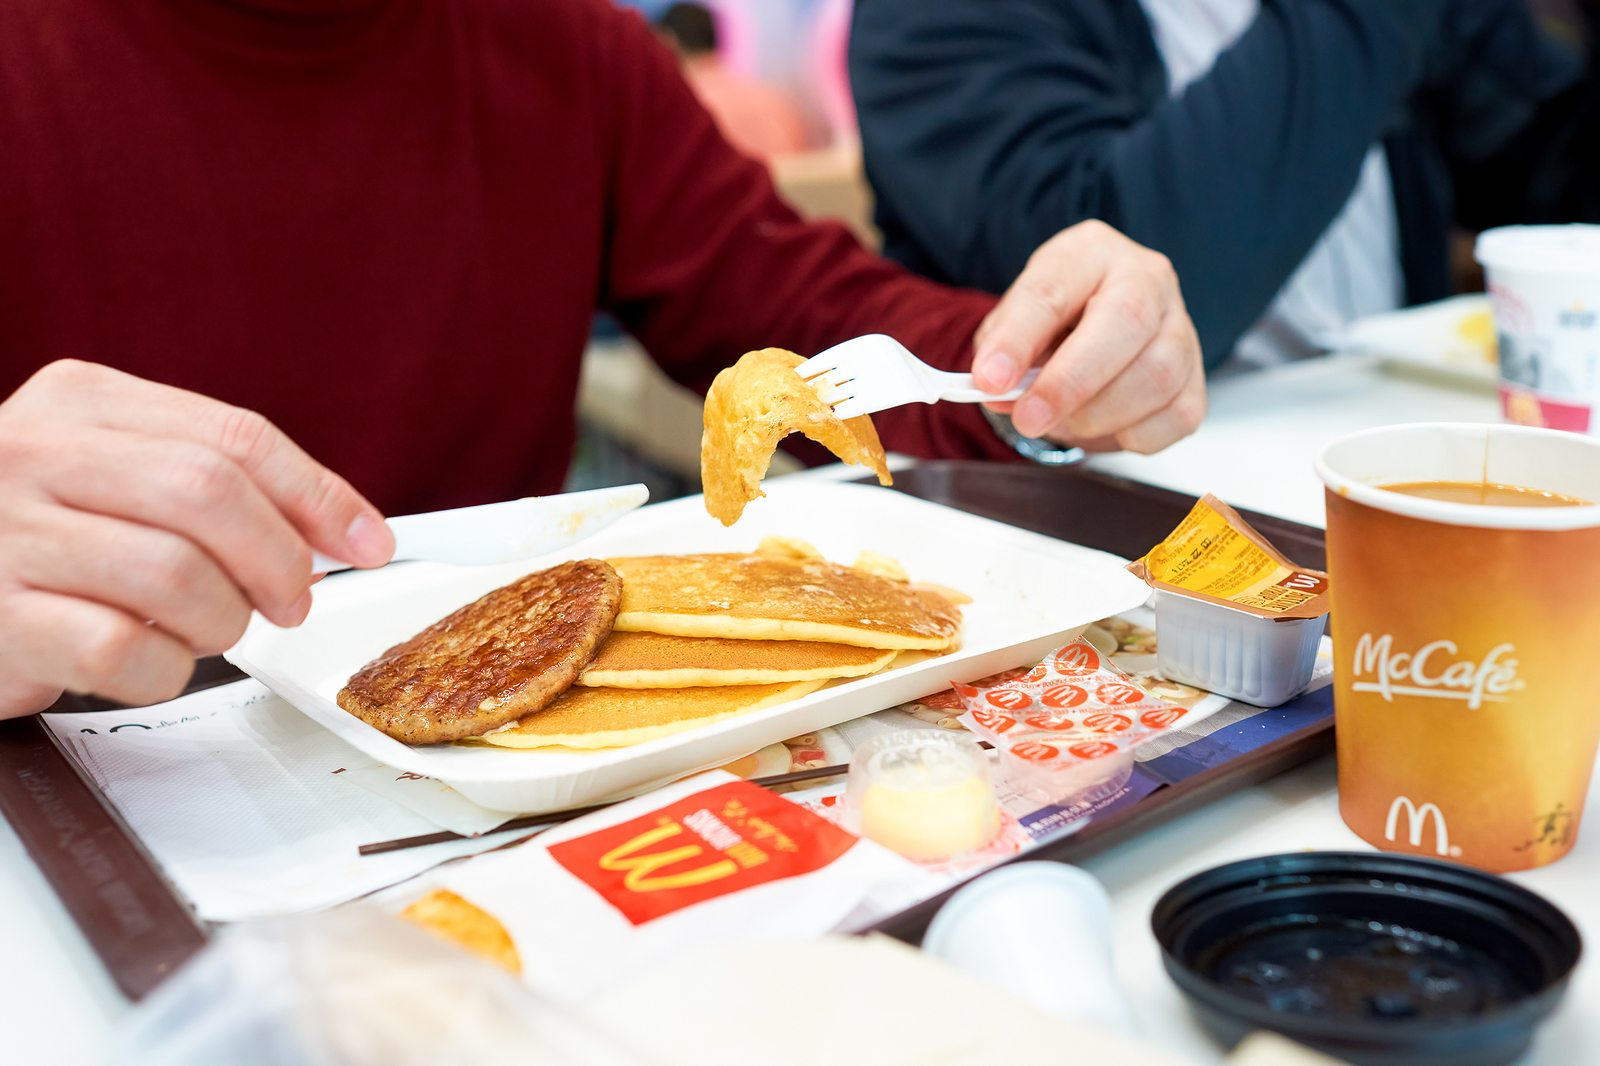 McDonald's breakfast marketing all day